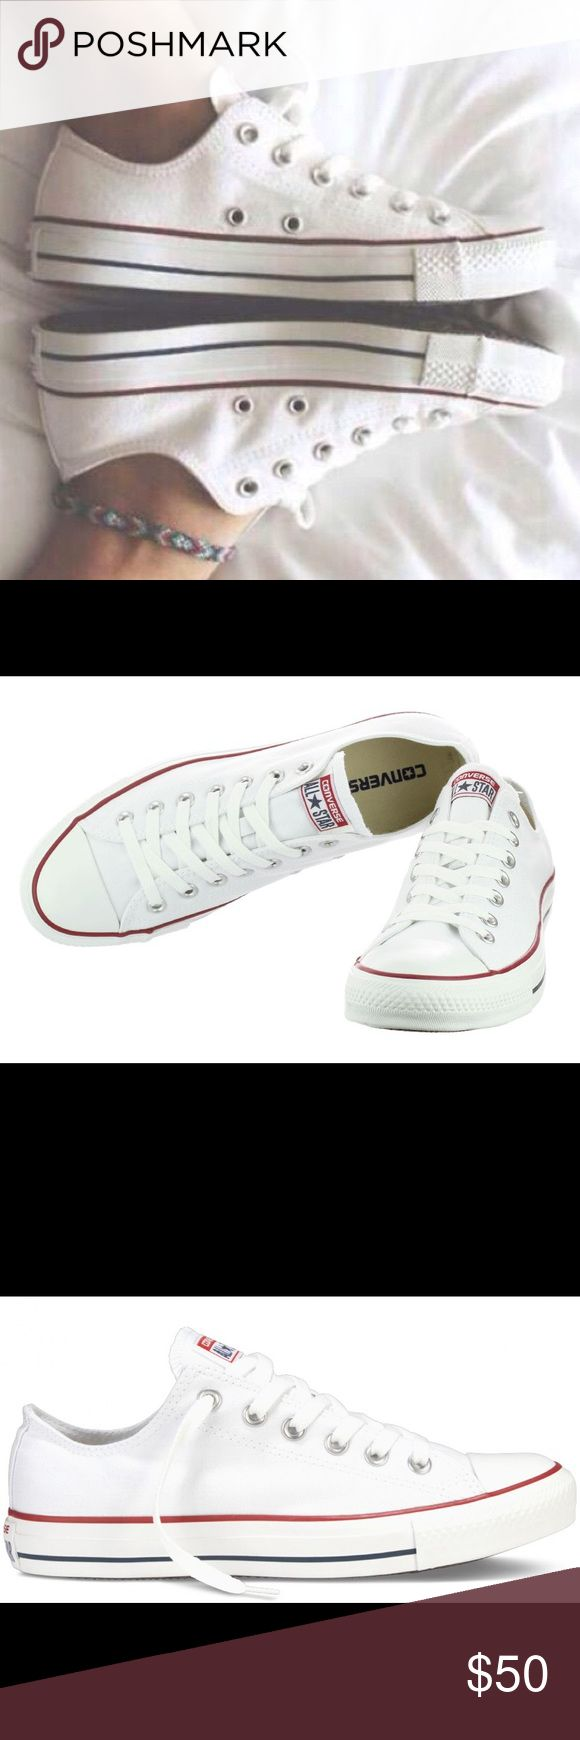 Converse Chuck Taylor All Star Low Top White shoes Converse Chuck Taylor All Star Shoes (M7652) Low Top in Optical White on Wanelo. WOMENS size 5. No box Converse Shoes Sneakers